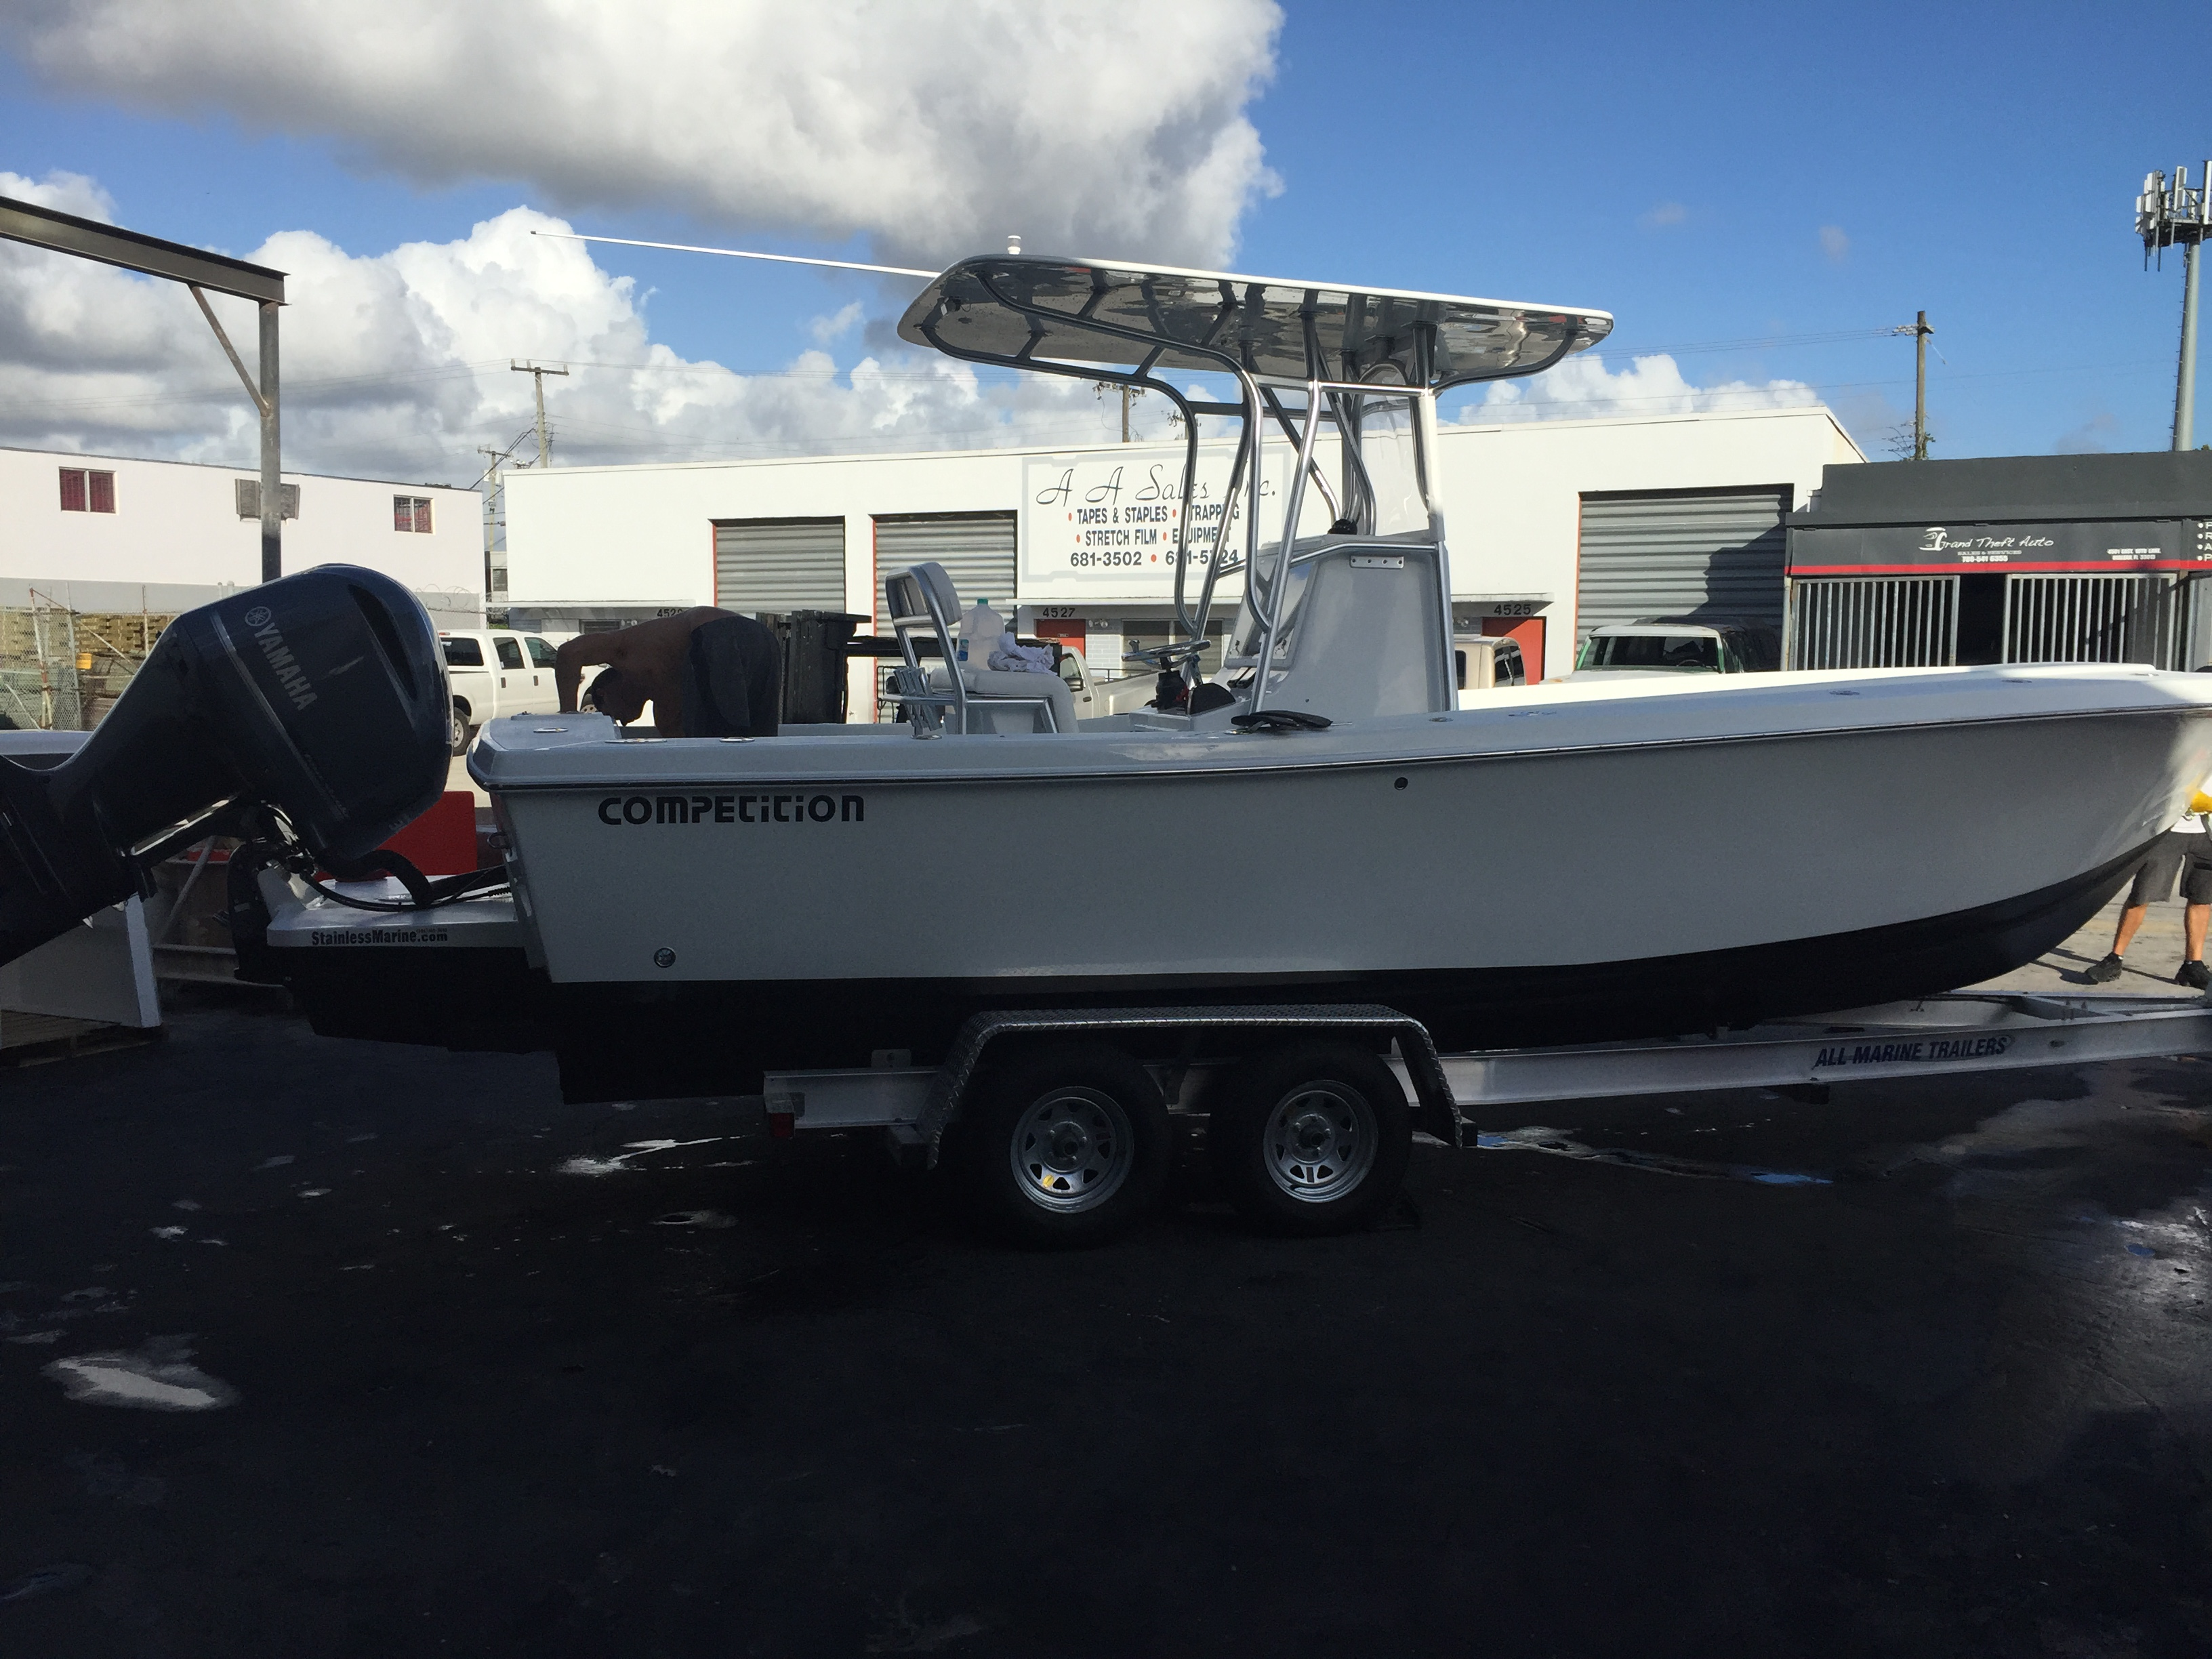 Best fishing boats for the money 2015 competition boats for Best fishing boat